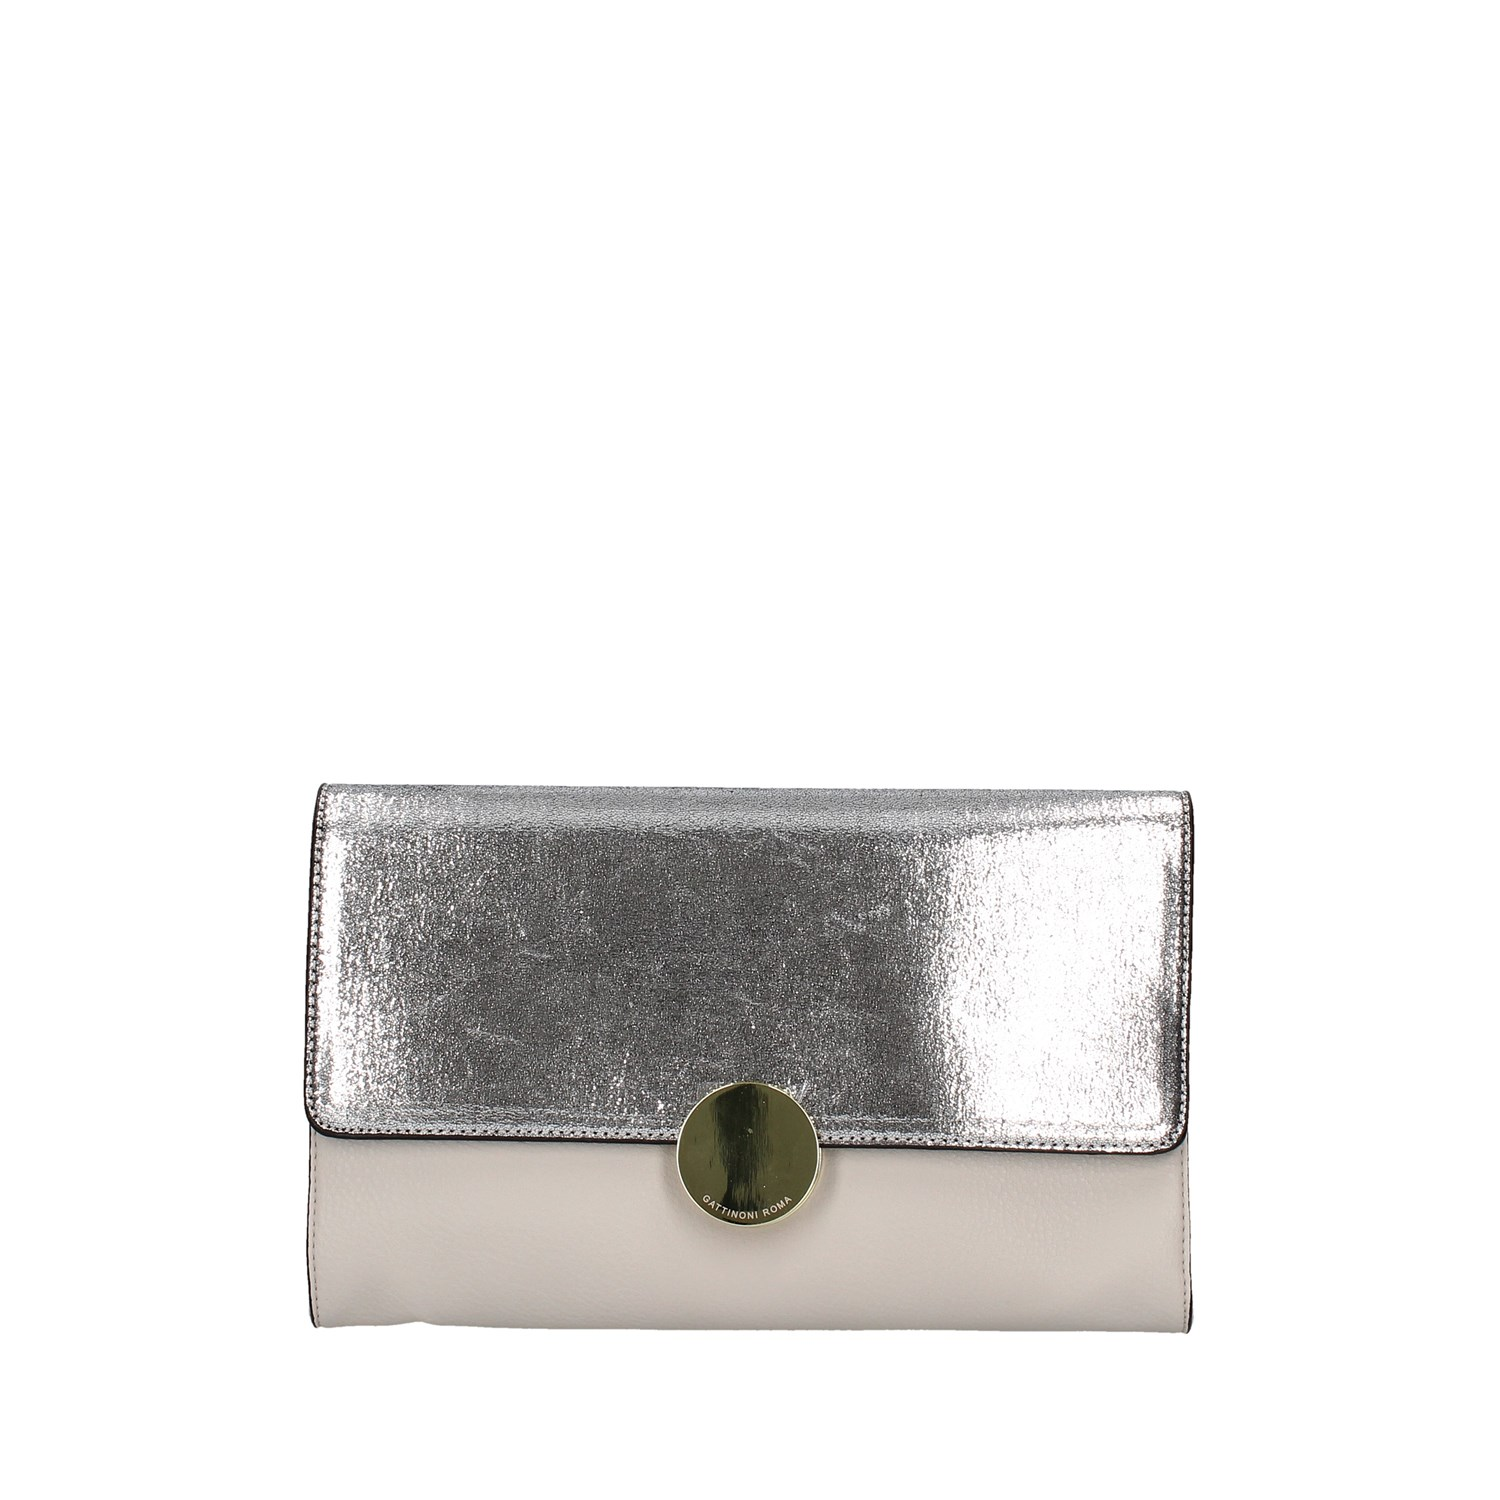 Gattinoni Roma Bags Accessories Clutch GREY BENEV6474WG